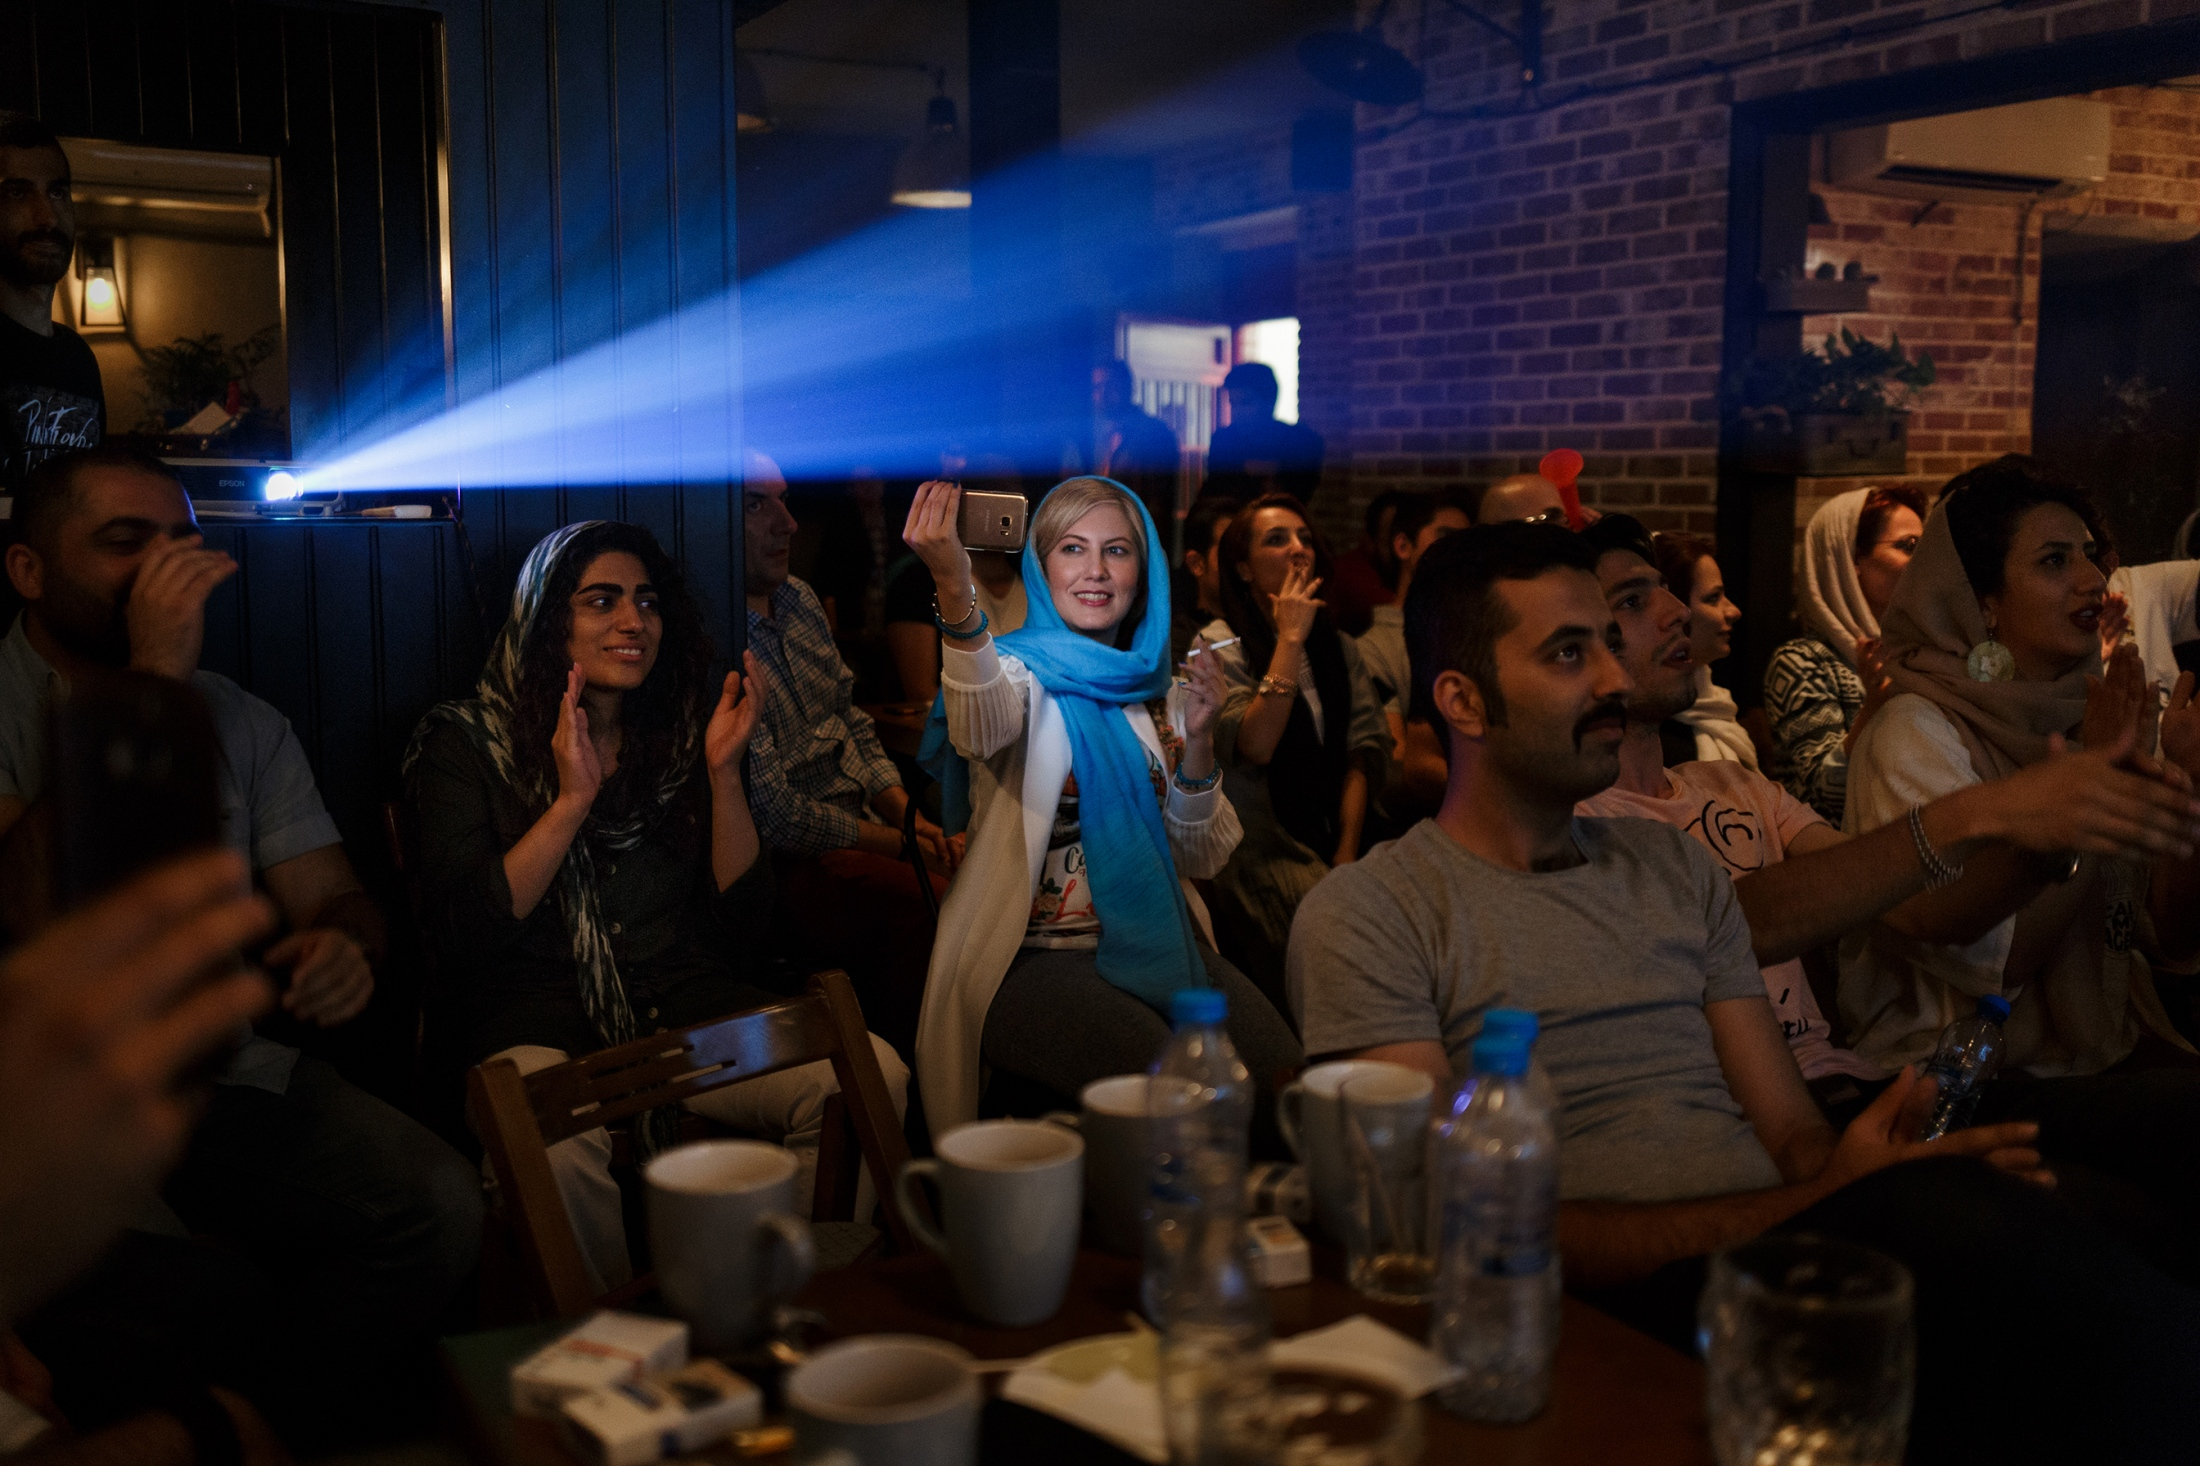 People watching Iran's world cup quali cation in a cafe in central Tehran. Women are not allowed to go to football stadiums in Iran. Some manage to get around this prohibition by dressing up as a man.